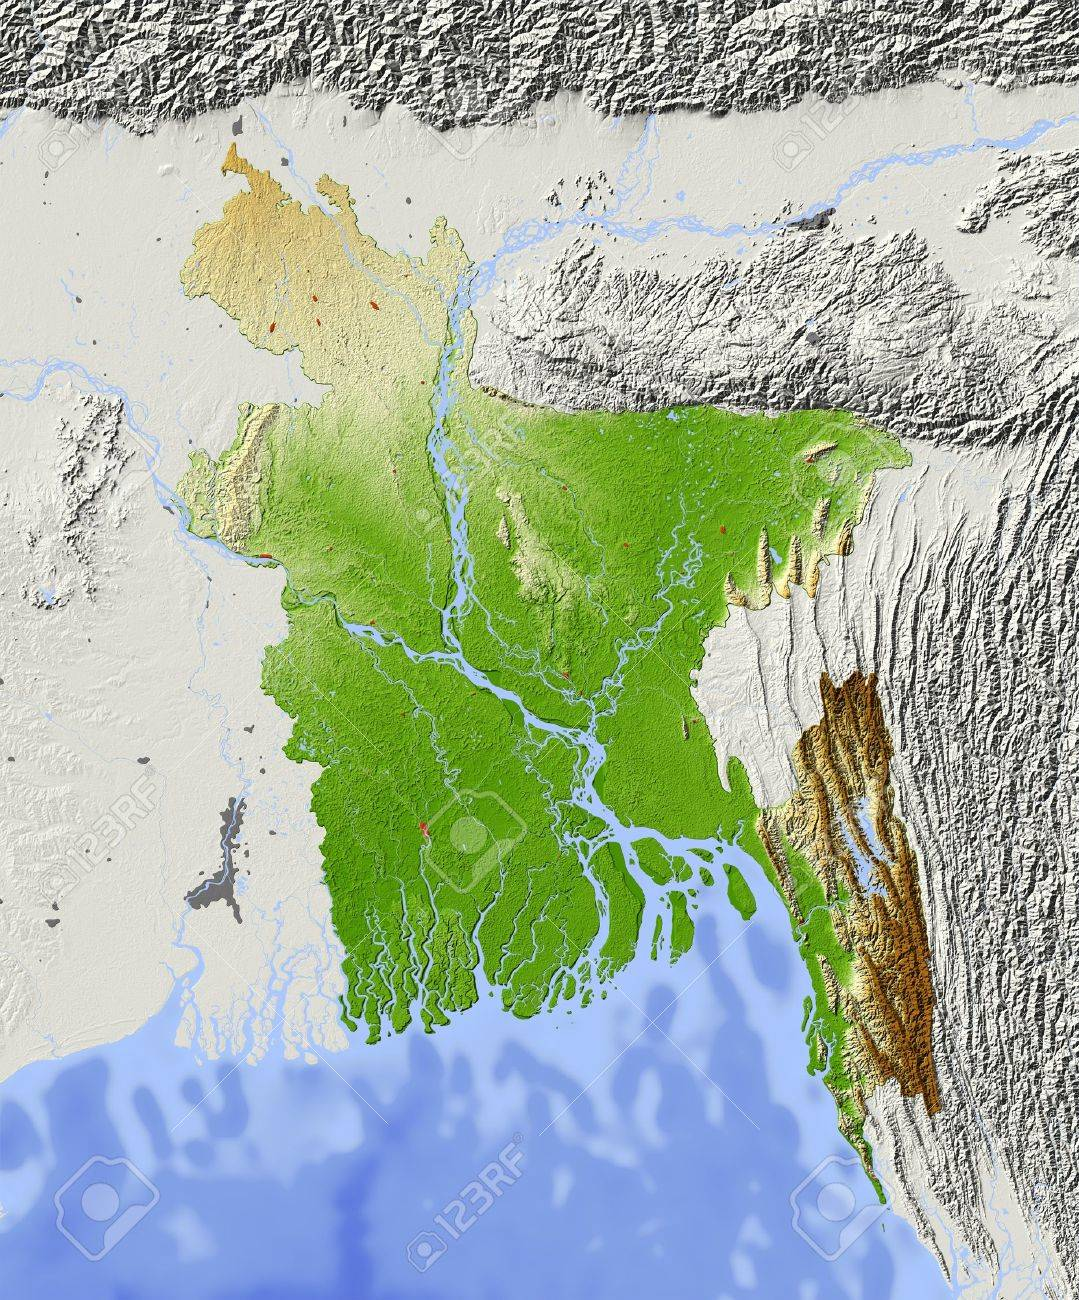 Bangladesh Shaded Relief Map Surrounding Territory Greyed Out